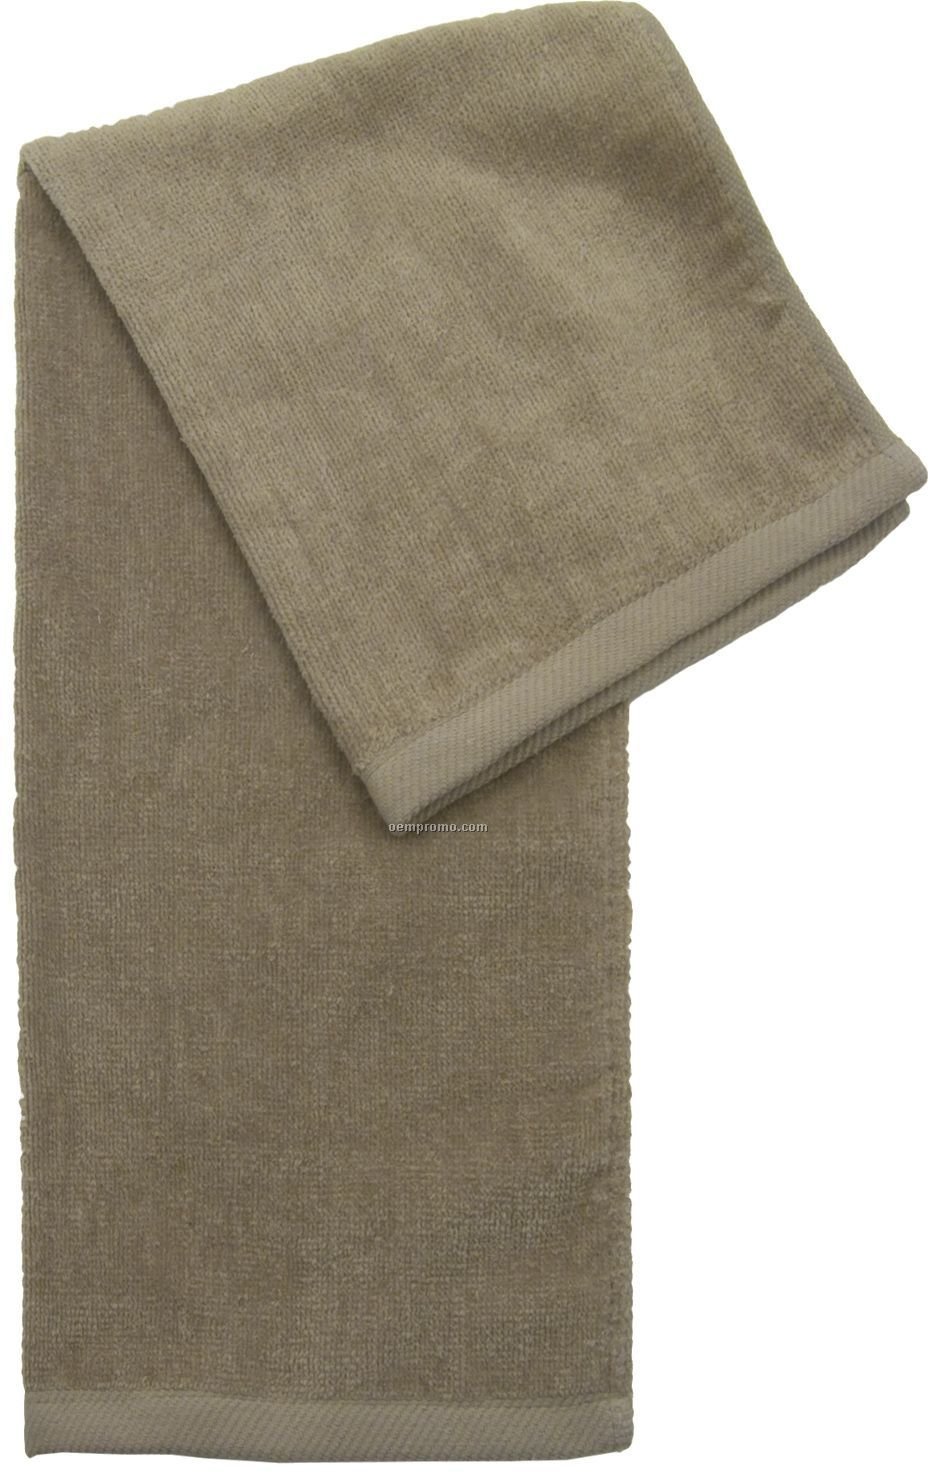 Sport Towel (Domestic 5 Day Delivery)